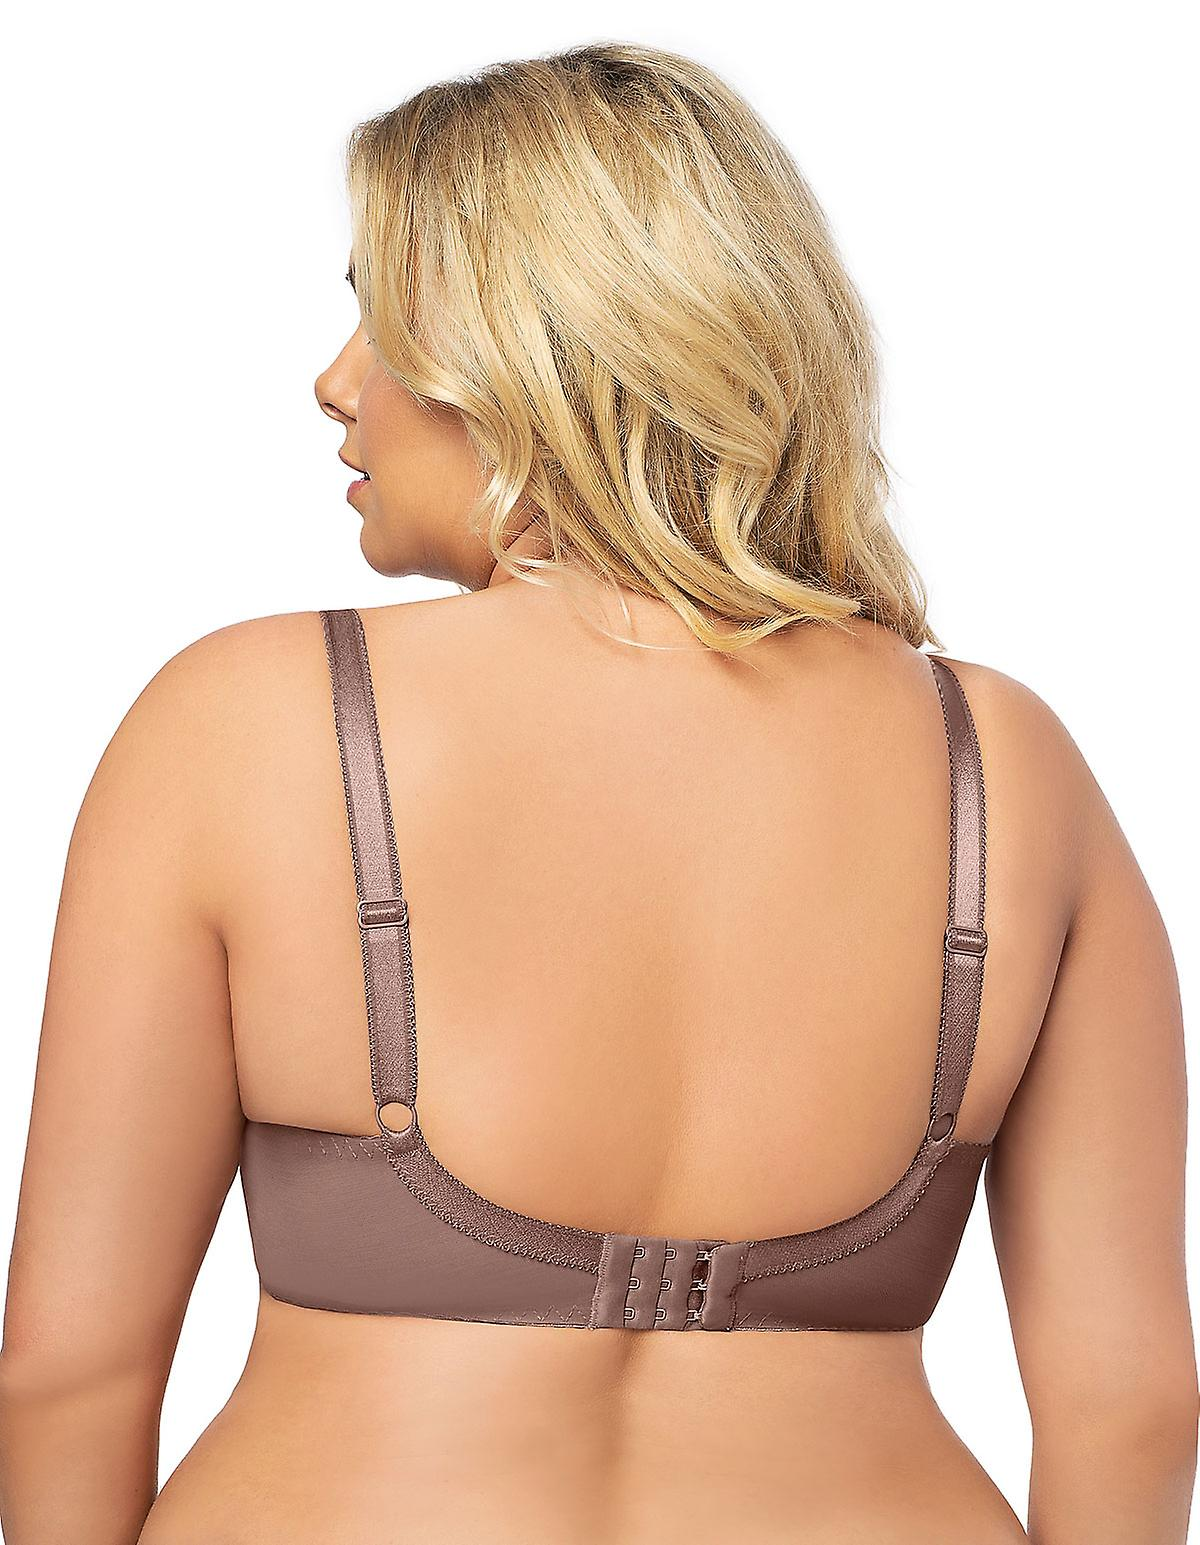 Gorsenia K494 Womens Hot Chocolate Mocca Brown Lace Non-Padded Underwired Full Cup Bra